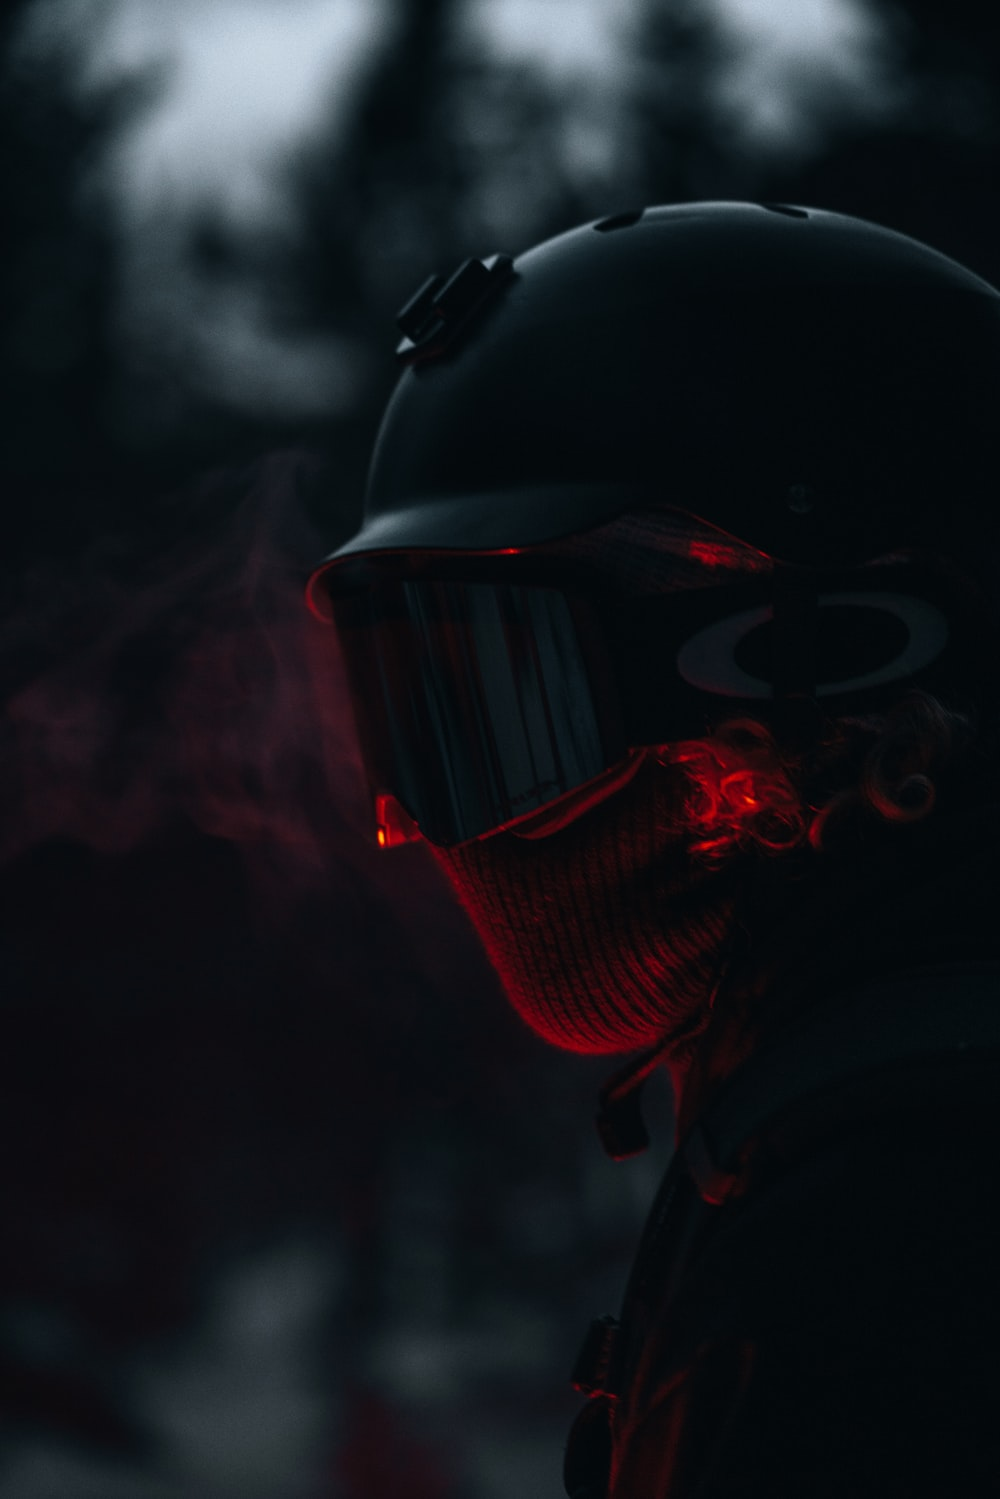 red and black mask with black and red mask